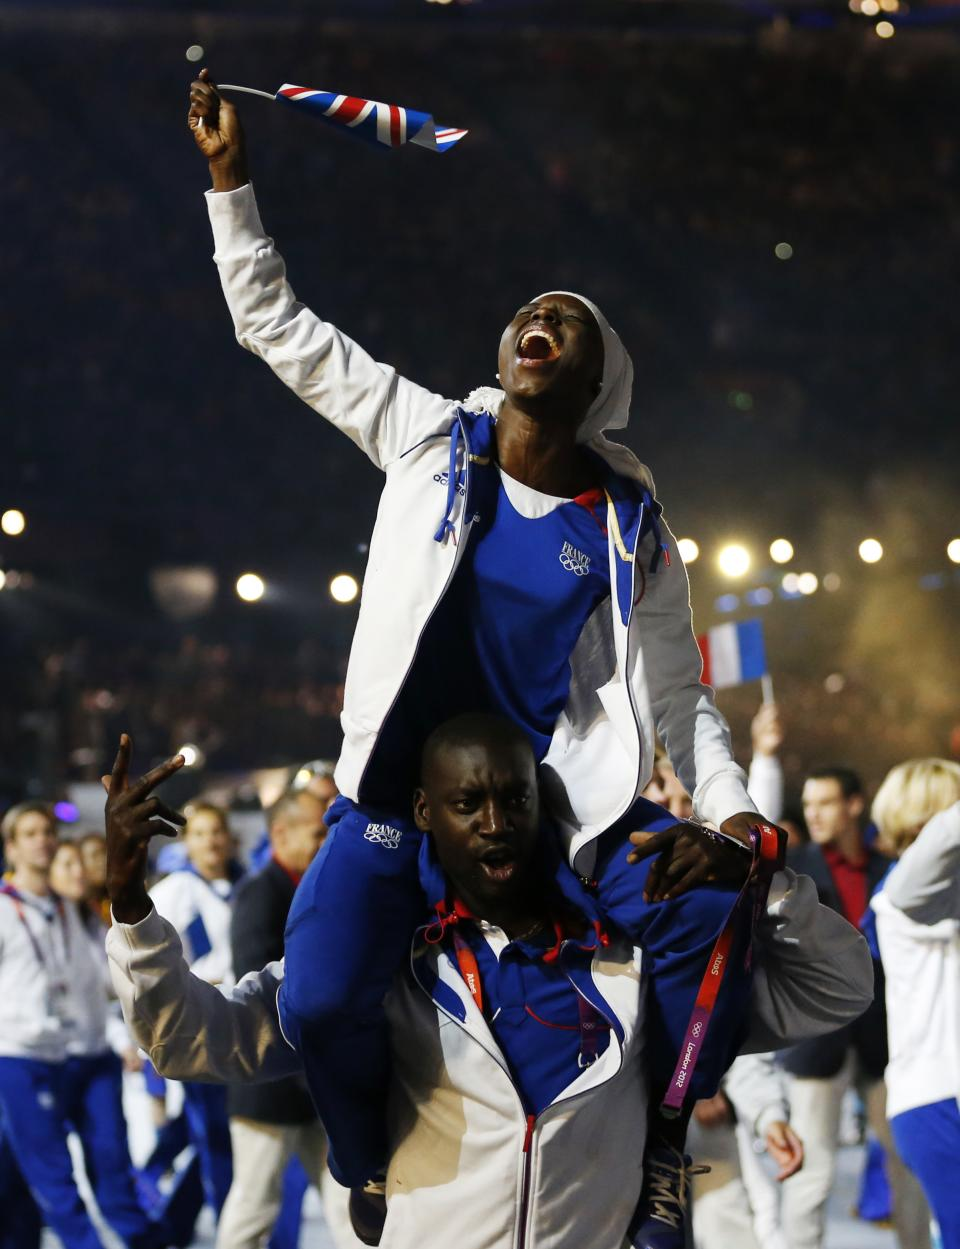 French athletes parade during the Closing Ceremony at the 2012 Summer Olympics, Sunday, Aug. 12, 2012, in London. (AP Photo/Matt Dunham)